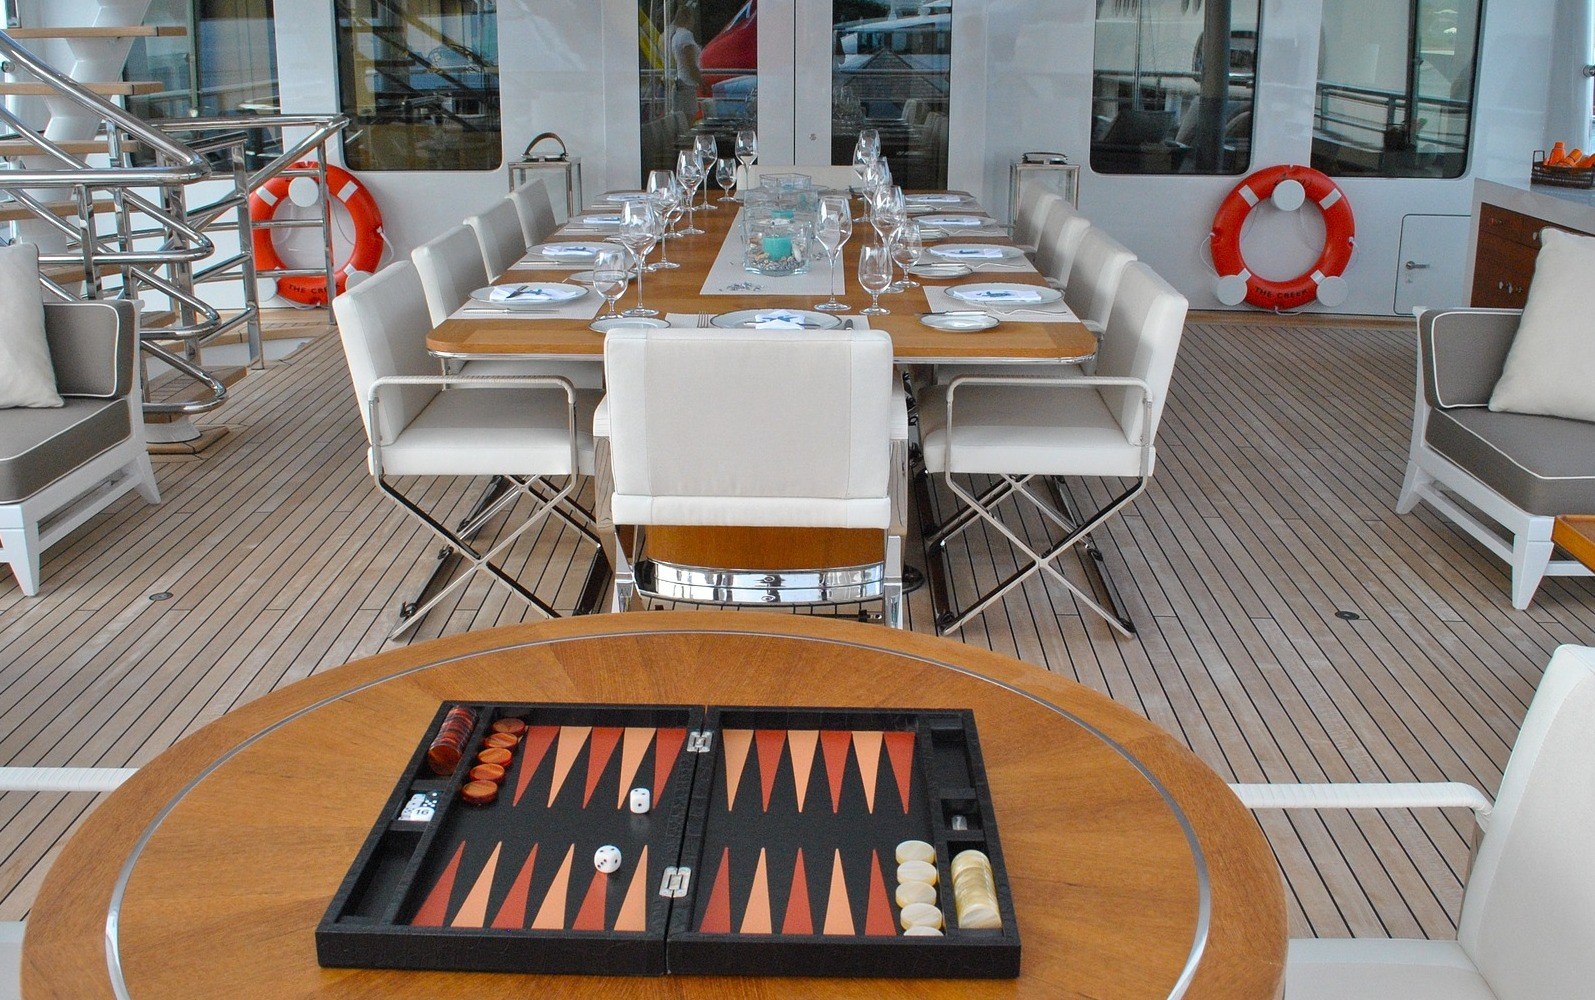 Yacht deck set for lunch.